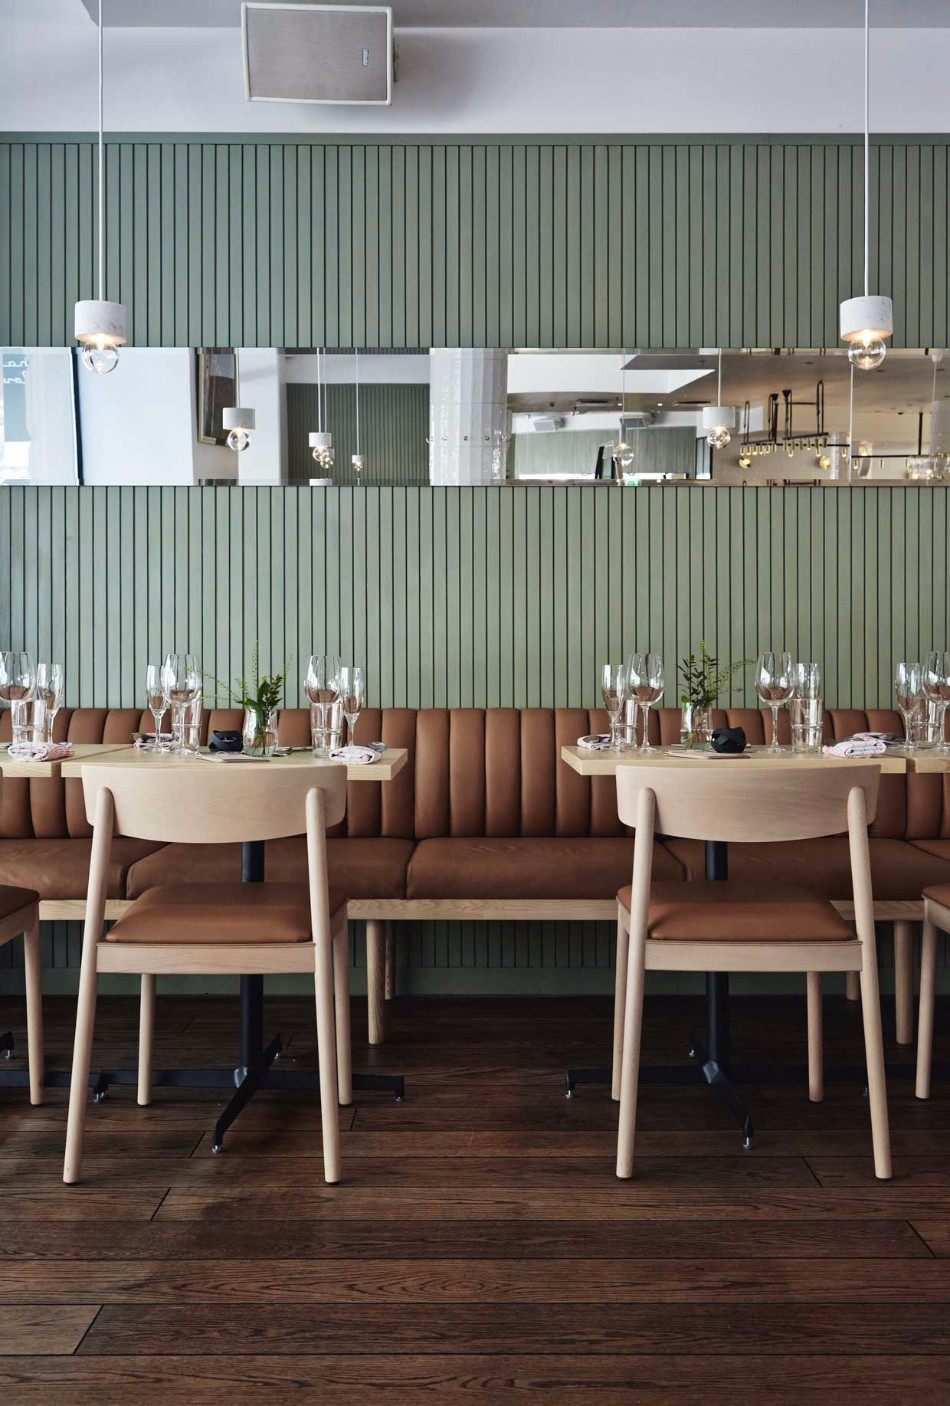 This Luxury Restaurant Design is Inspired by 1940s Kiosks | www.bocadolobo.com #restaurants #luxuryrestaurants #diningroom #diningarea #thediningroom #moderndiningtables #diningtables #tables #roomdesign #interiordesign #exclusivedesign #luxury @moderndiningtables luxury restaurant This Luxury Restaurant Design is Inspired by 1940s Kiosks This Luxury Restaurant Design is Inspired by 1940s Kiosks 1